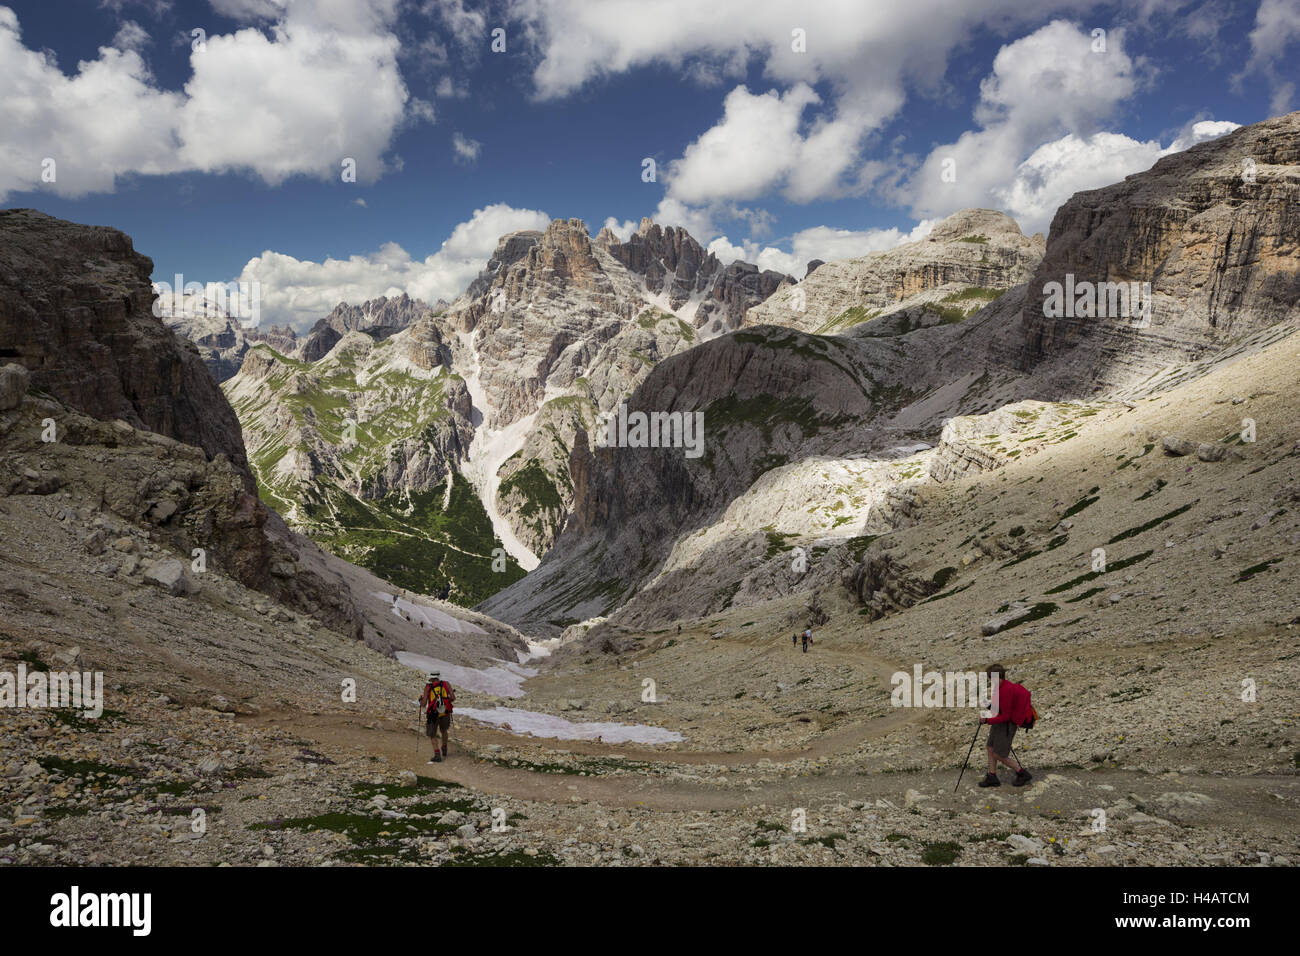 Neunerkofel, Büllelejoch, traveller, South Tyrol, the Dolomites mountains, Italy - Stock Image